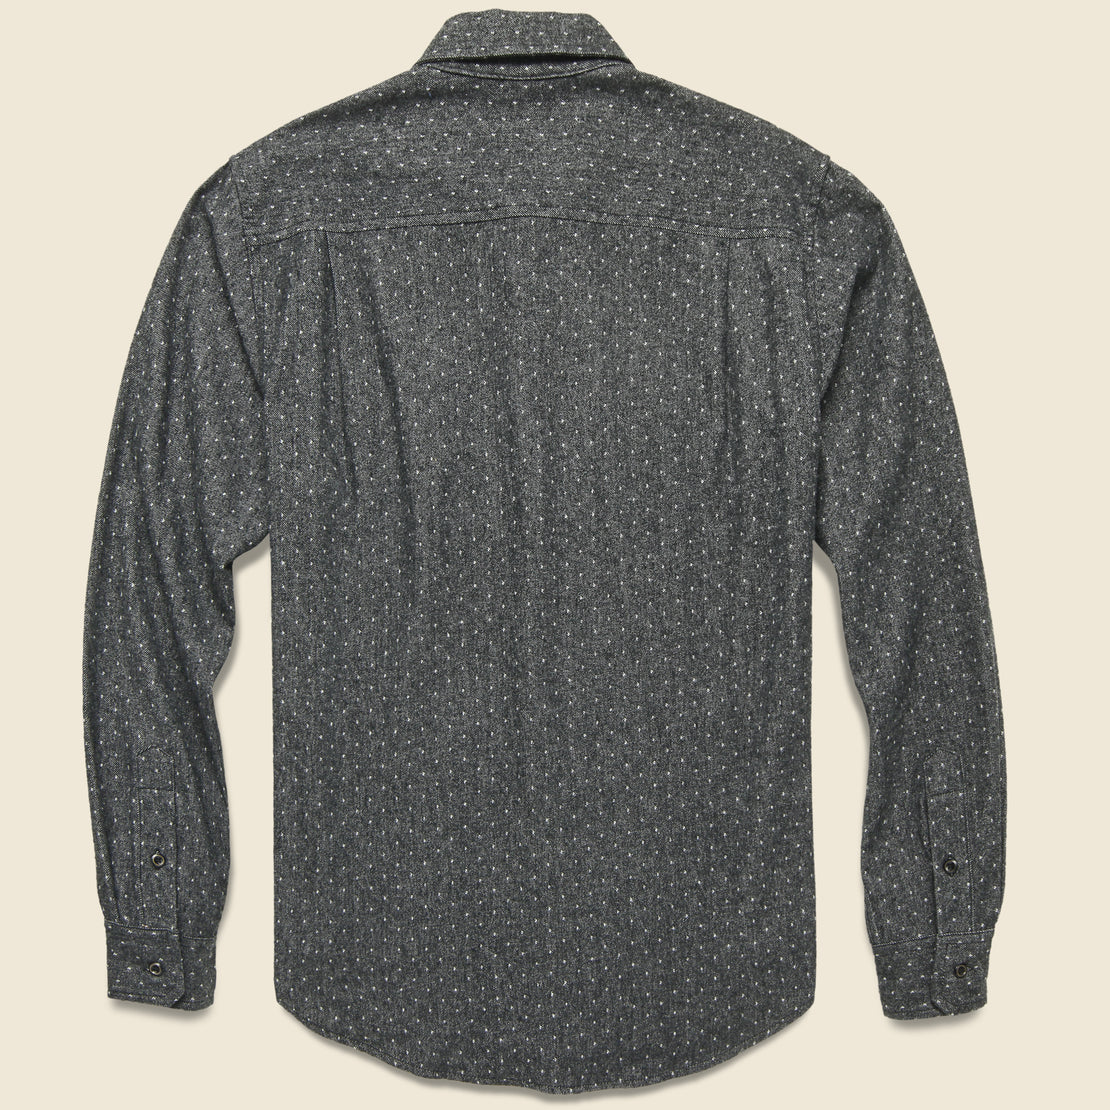 Winslow Flannel - Charcoal Polkadot